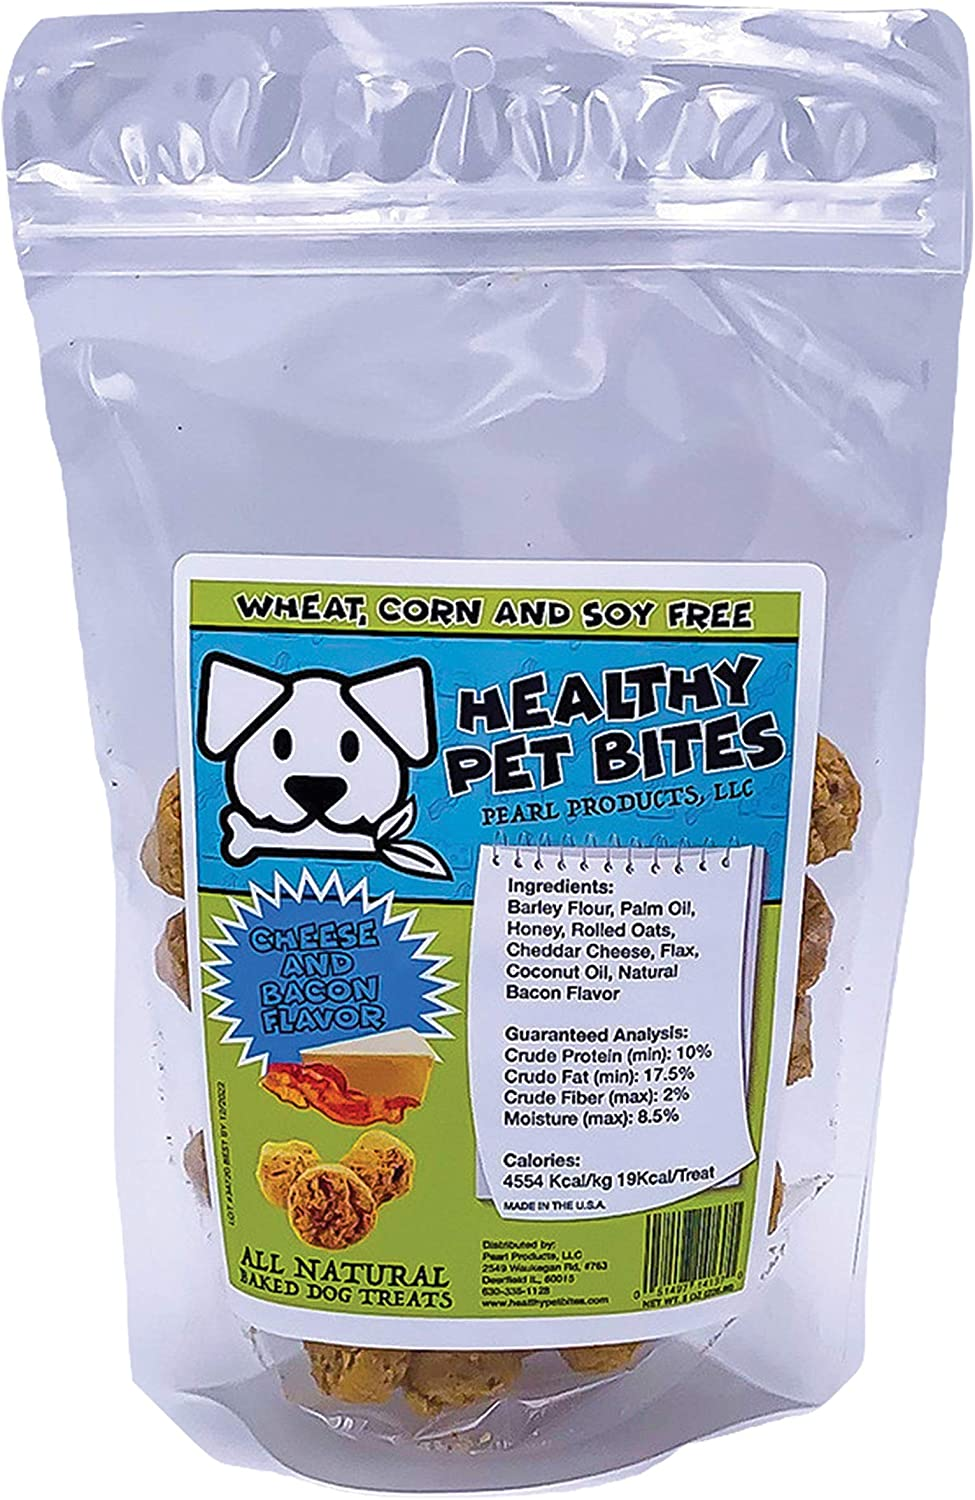 Healthy Pet Bites Cheese Max 62% OFF OFFicial site Bacon Flavor •All Treats Natural